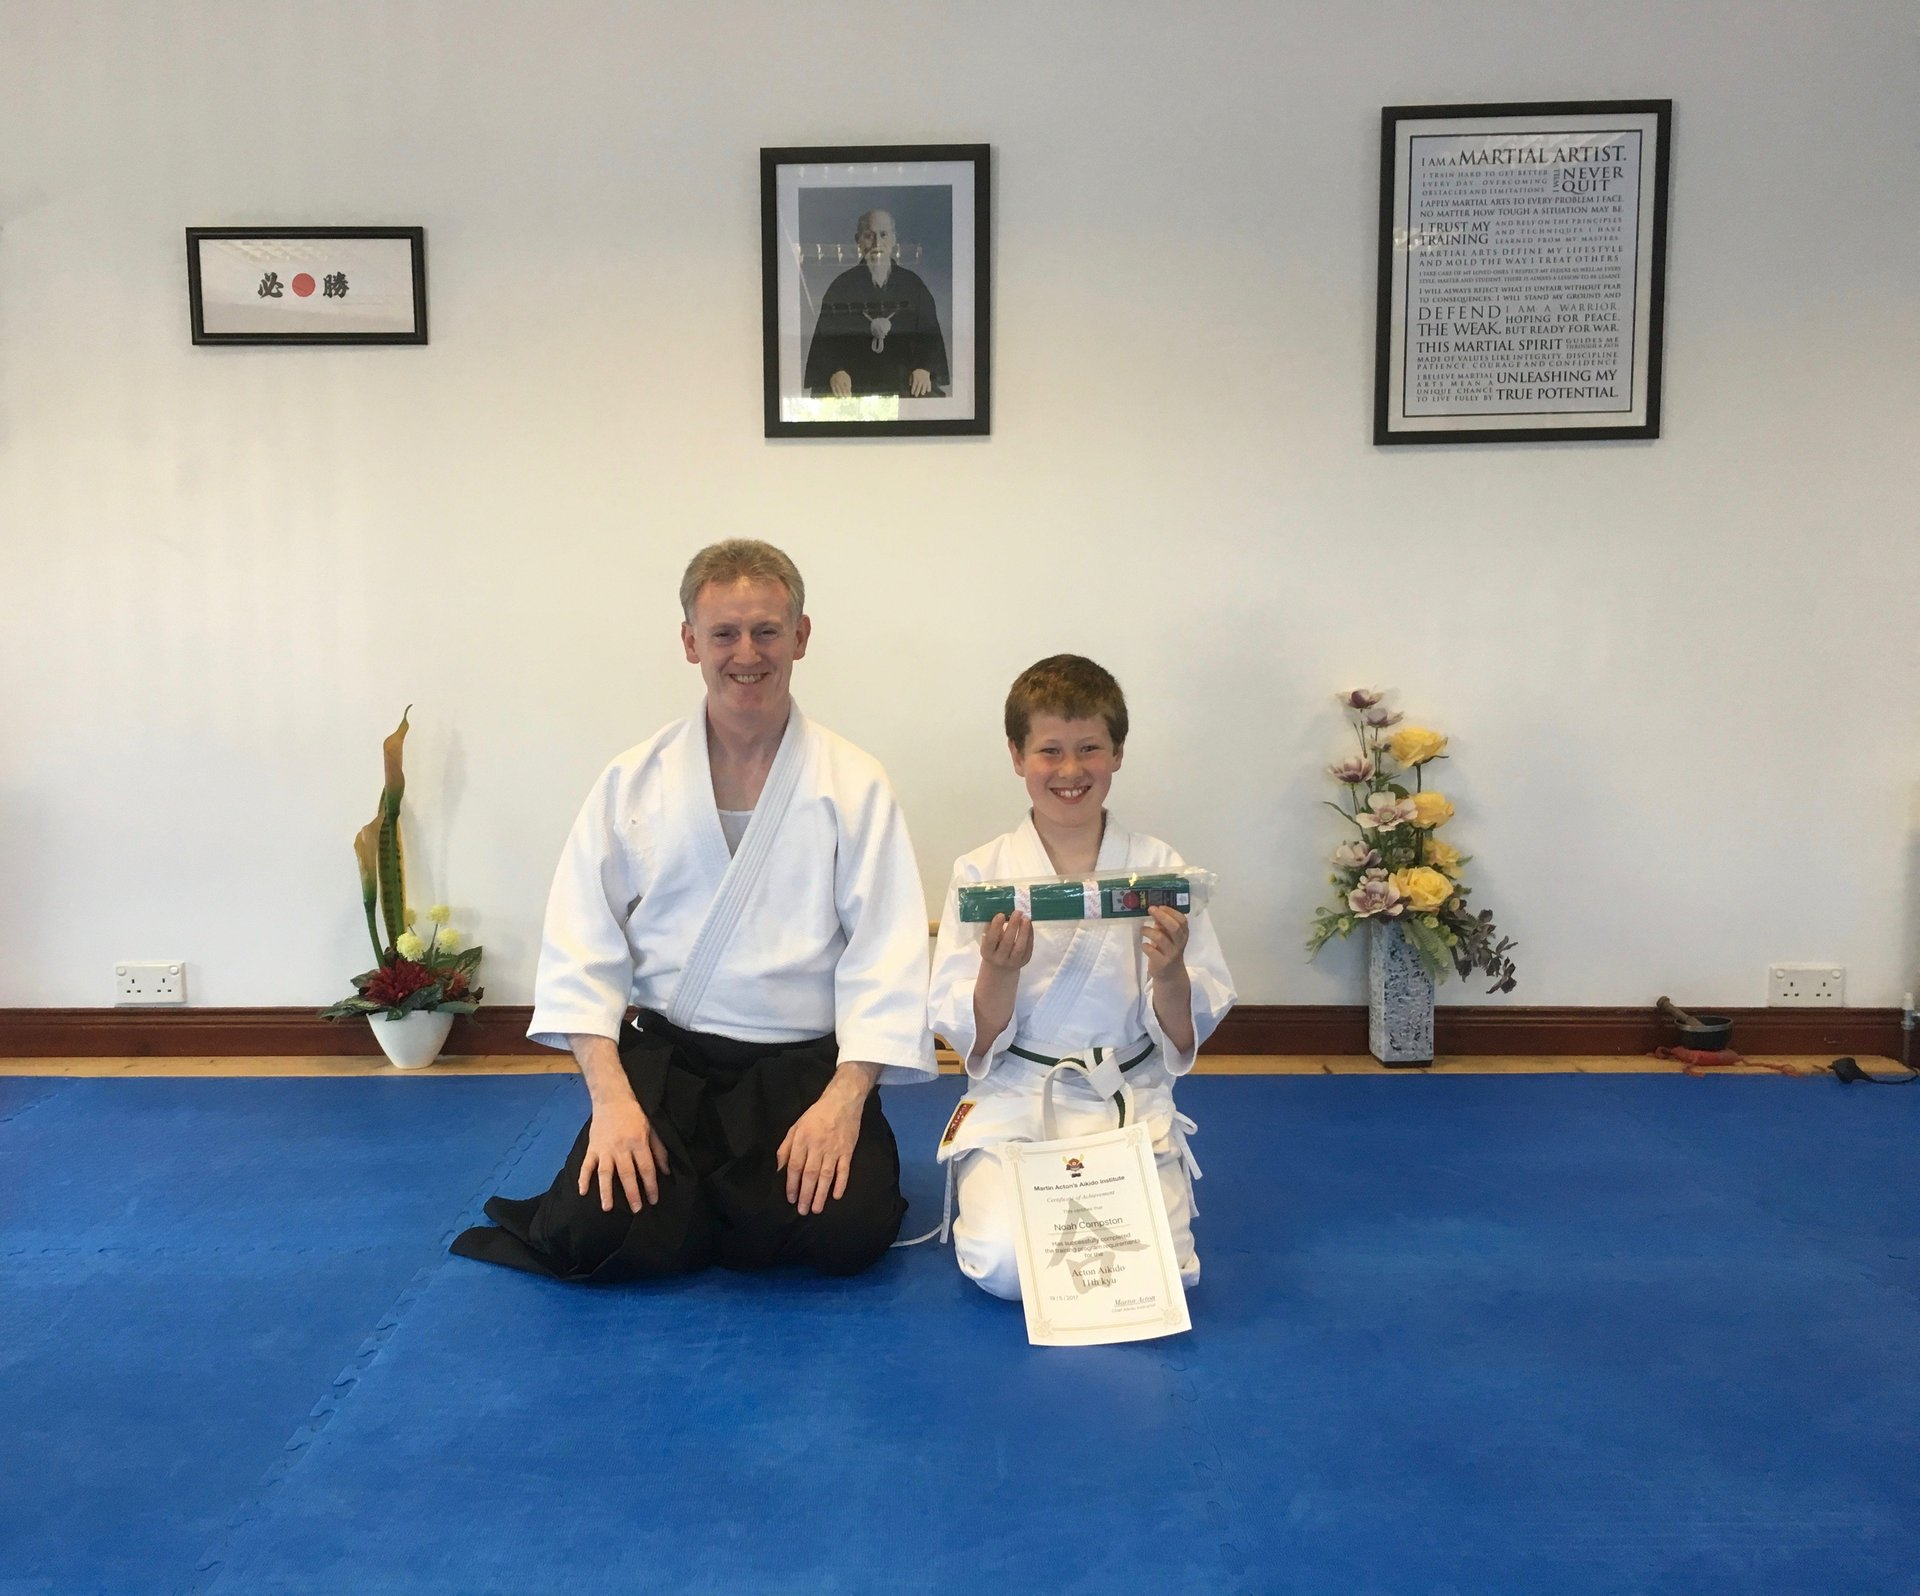 Noah Compton receiving his Aikido 11th  kyu grading with Martin Acton sensei on 19/5/2017 www.martinactonaikido.com